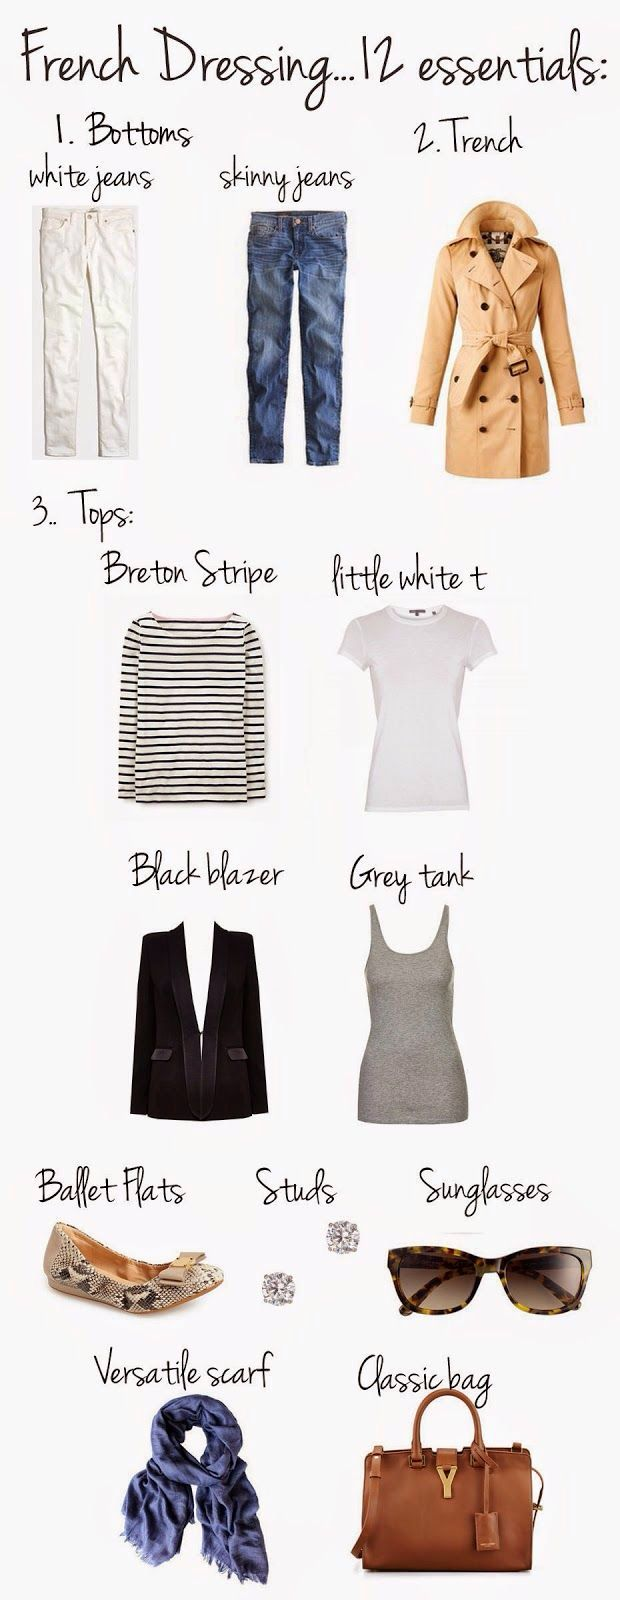 12 Capsule Wardrobe Essentials For French Dressing